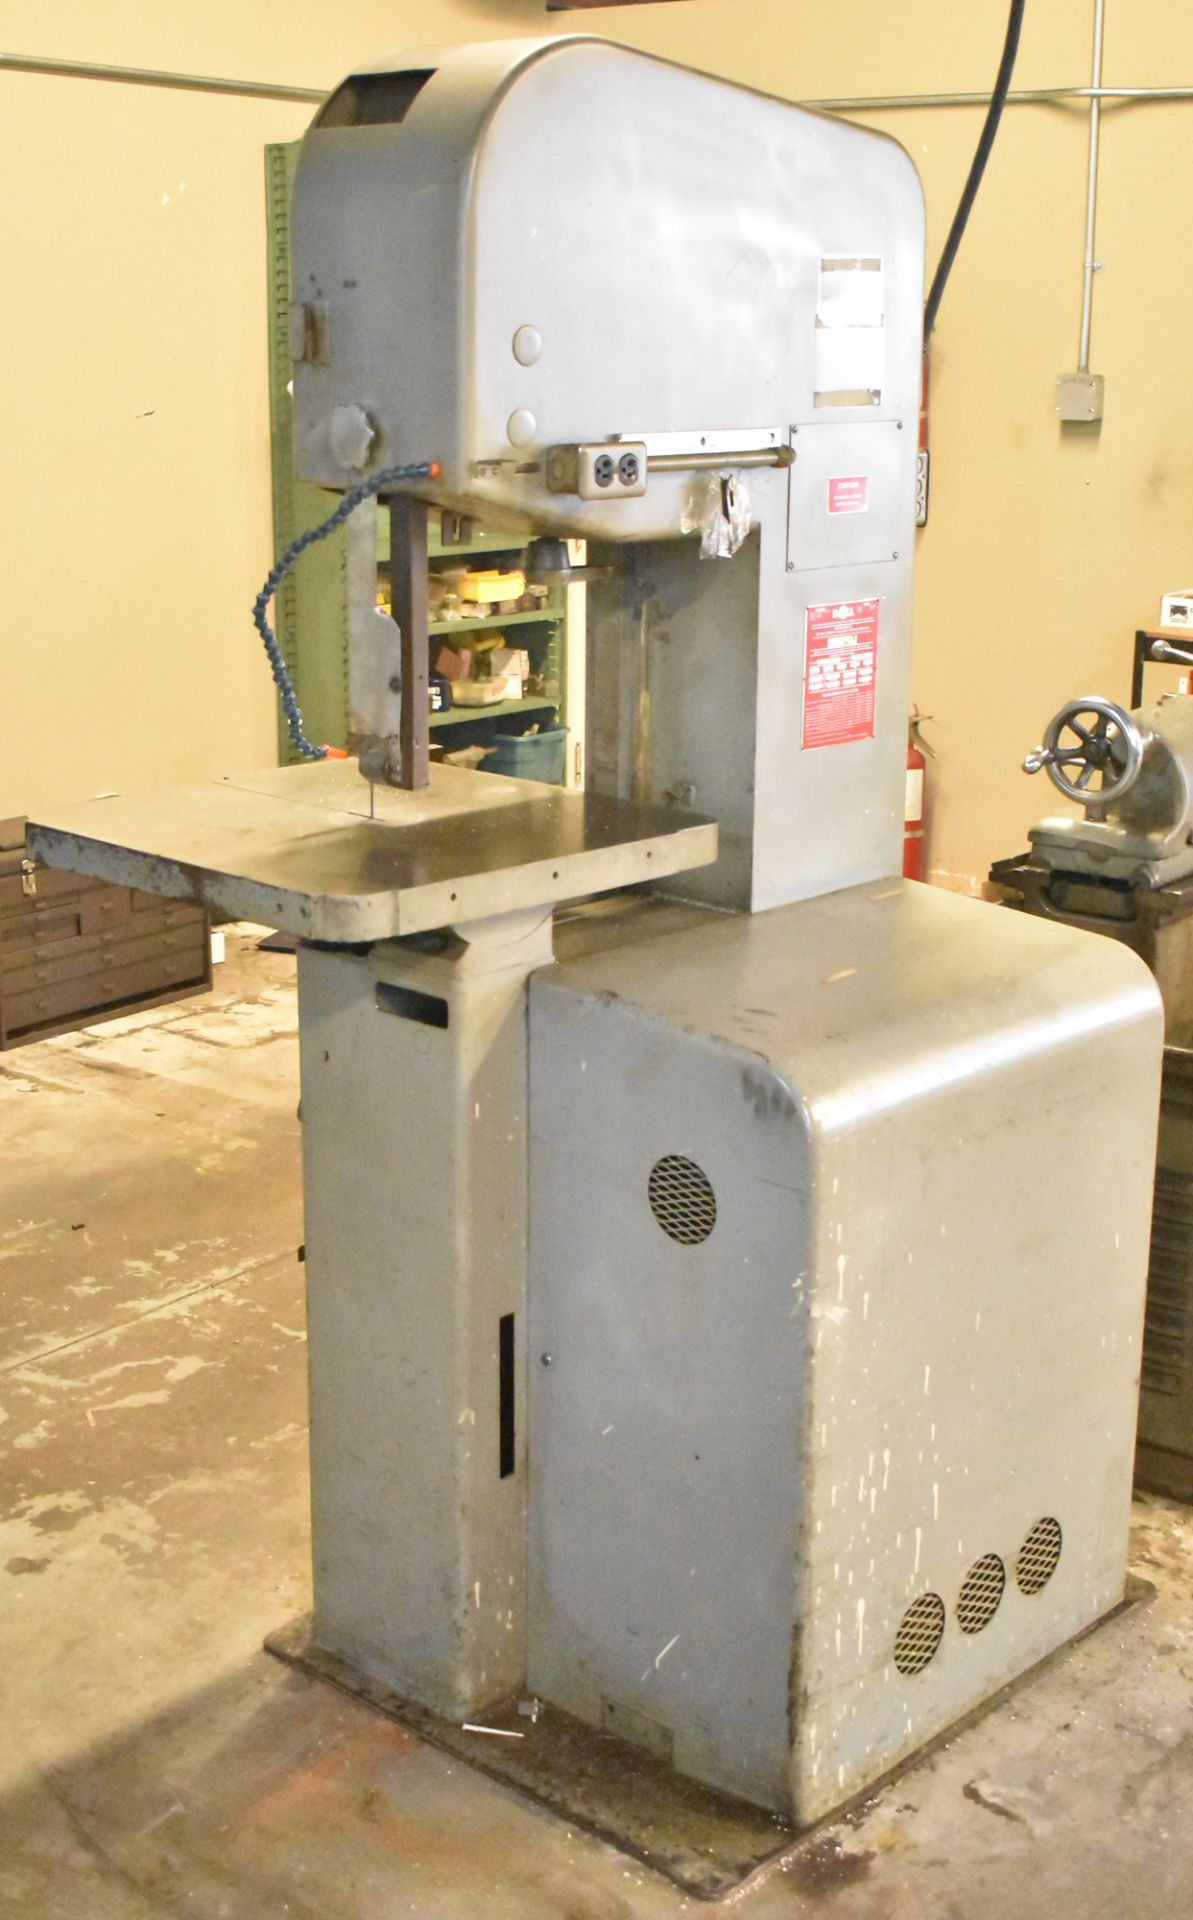 """Lot 3 - DOALL 1612-0 VERTICAL BAND SAW WITH 16"""" THROAT, 12"""" MAX WORK PIECE HEIGHT, BLADE WELDER AND GRINDER,"""